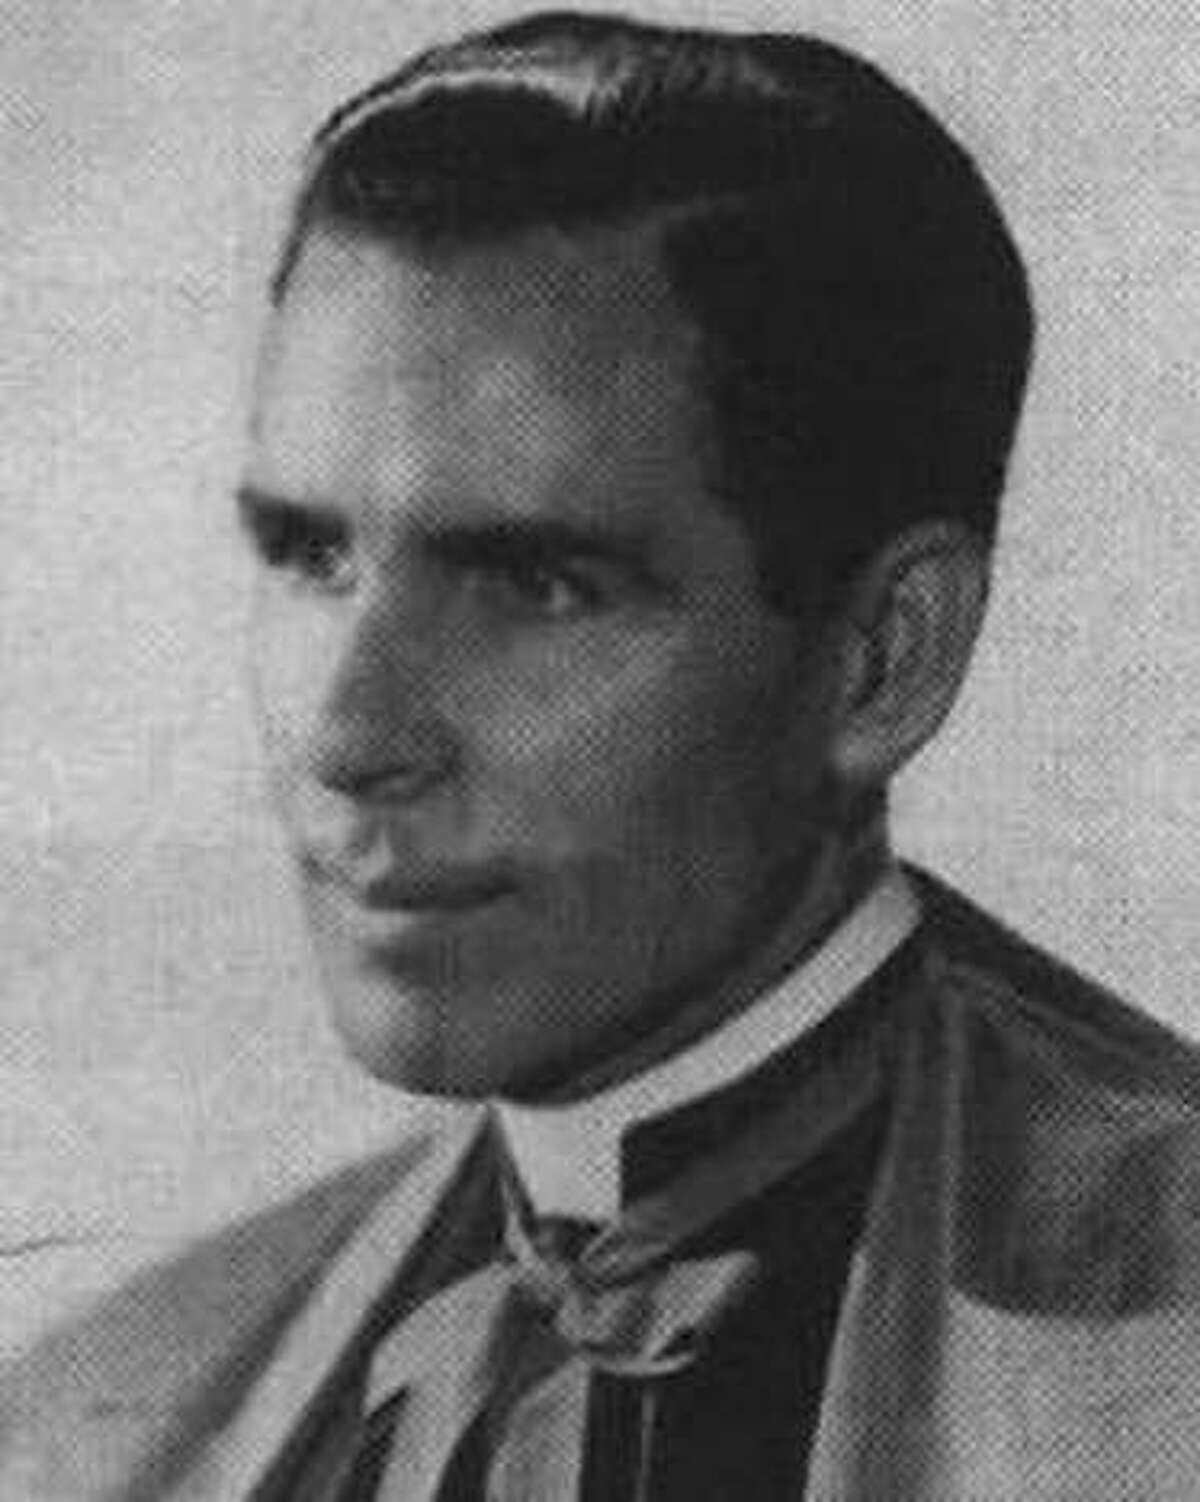 Rev. Fulton Sheen thought faith should be informed. Photo courtesy of Members.aol.com